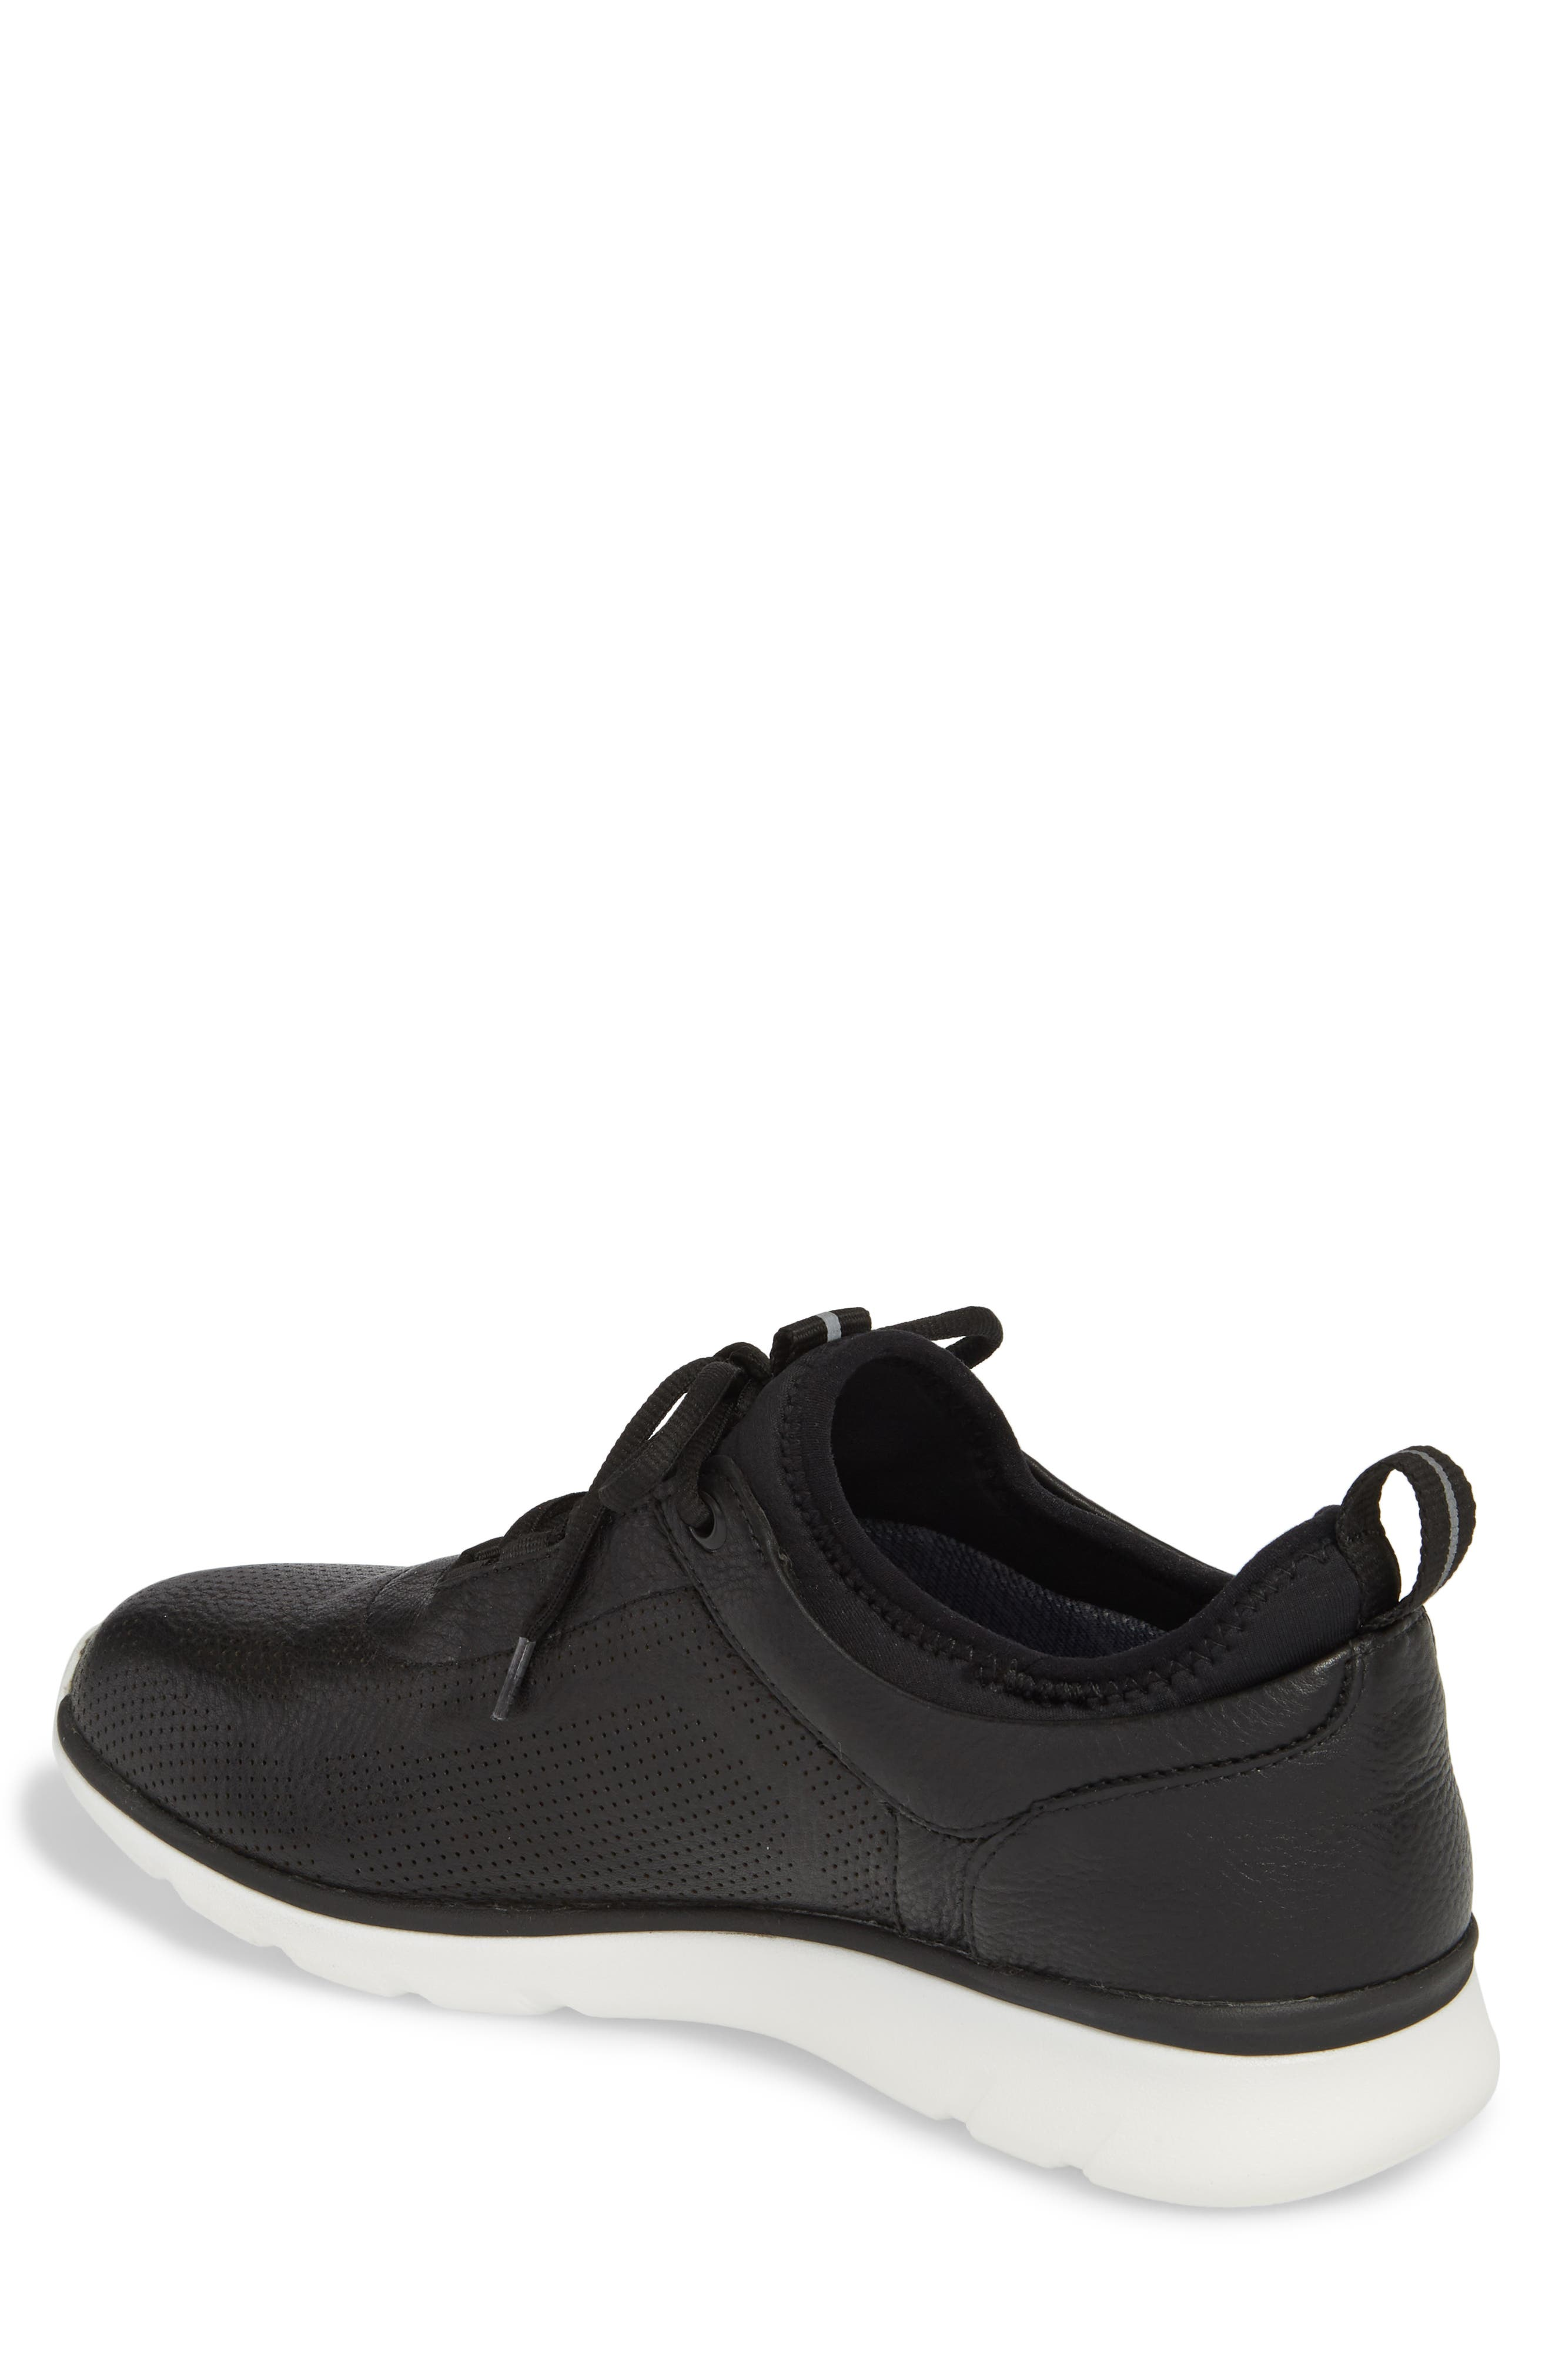 JOHNSTON & MURPHY, Prentiss XC4<sup>®</sup> Waterproof Sneaker, Alternate thumbnail 2, color, BLACK LEATHER